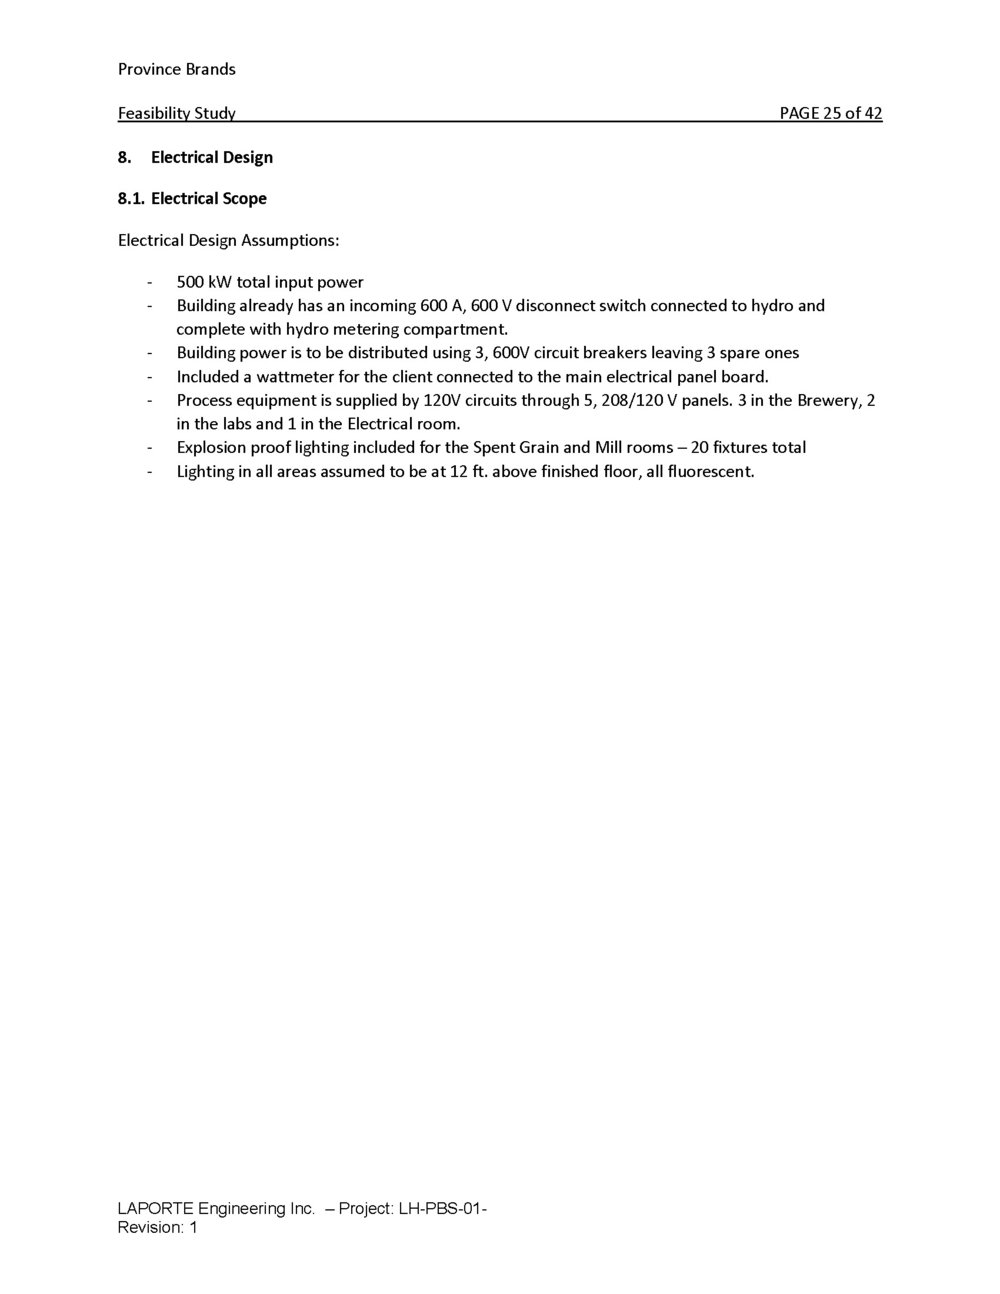 LH-PBS-01_Feasibility Study Report_01 Sep - kevwitch and dooma comments_Page_25.jpg